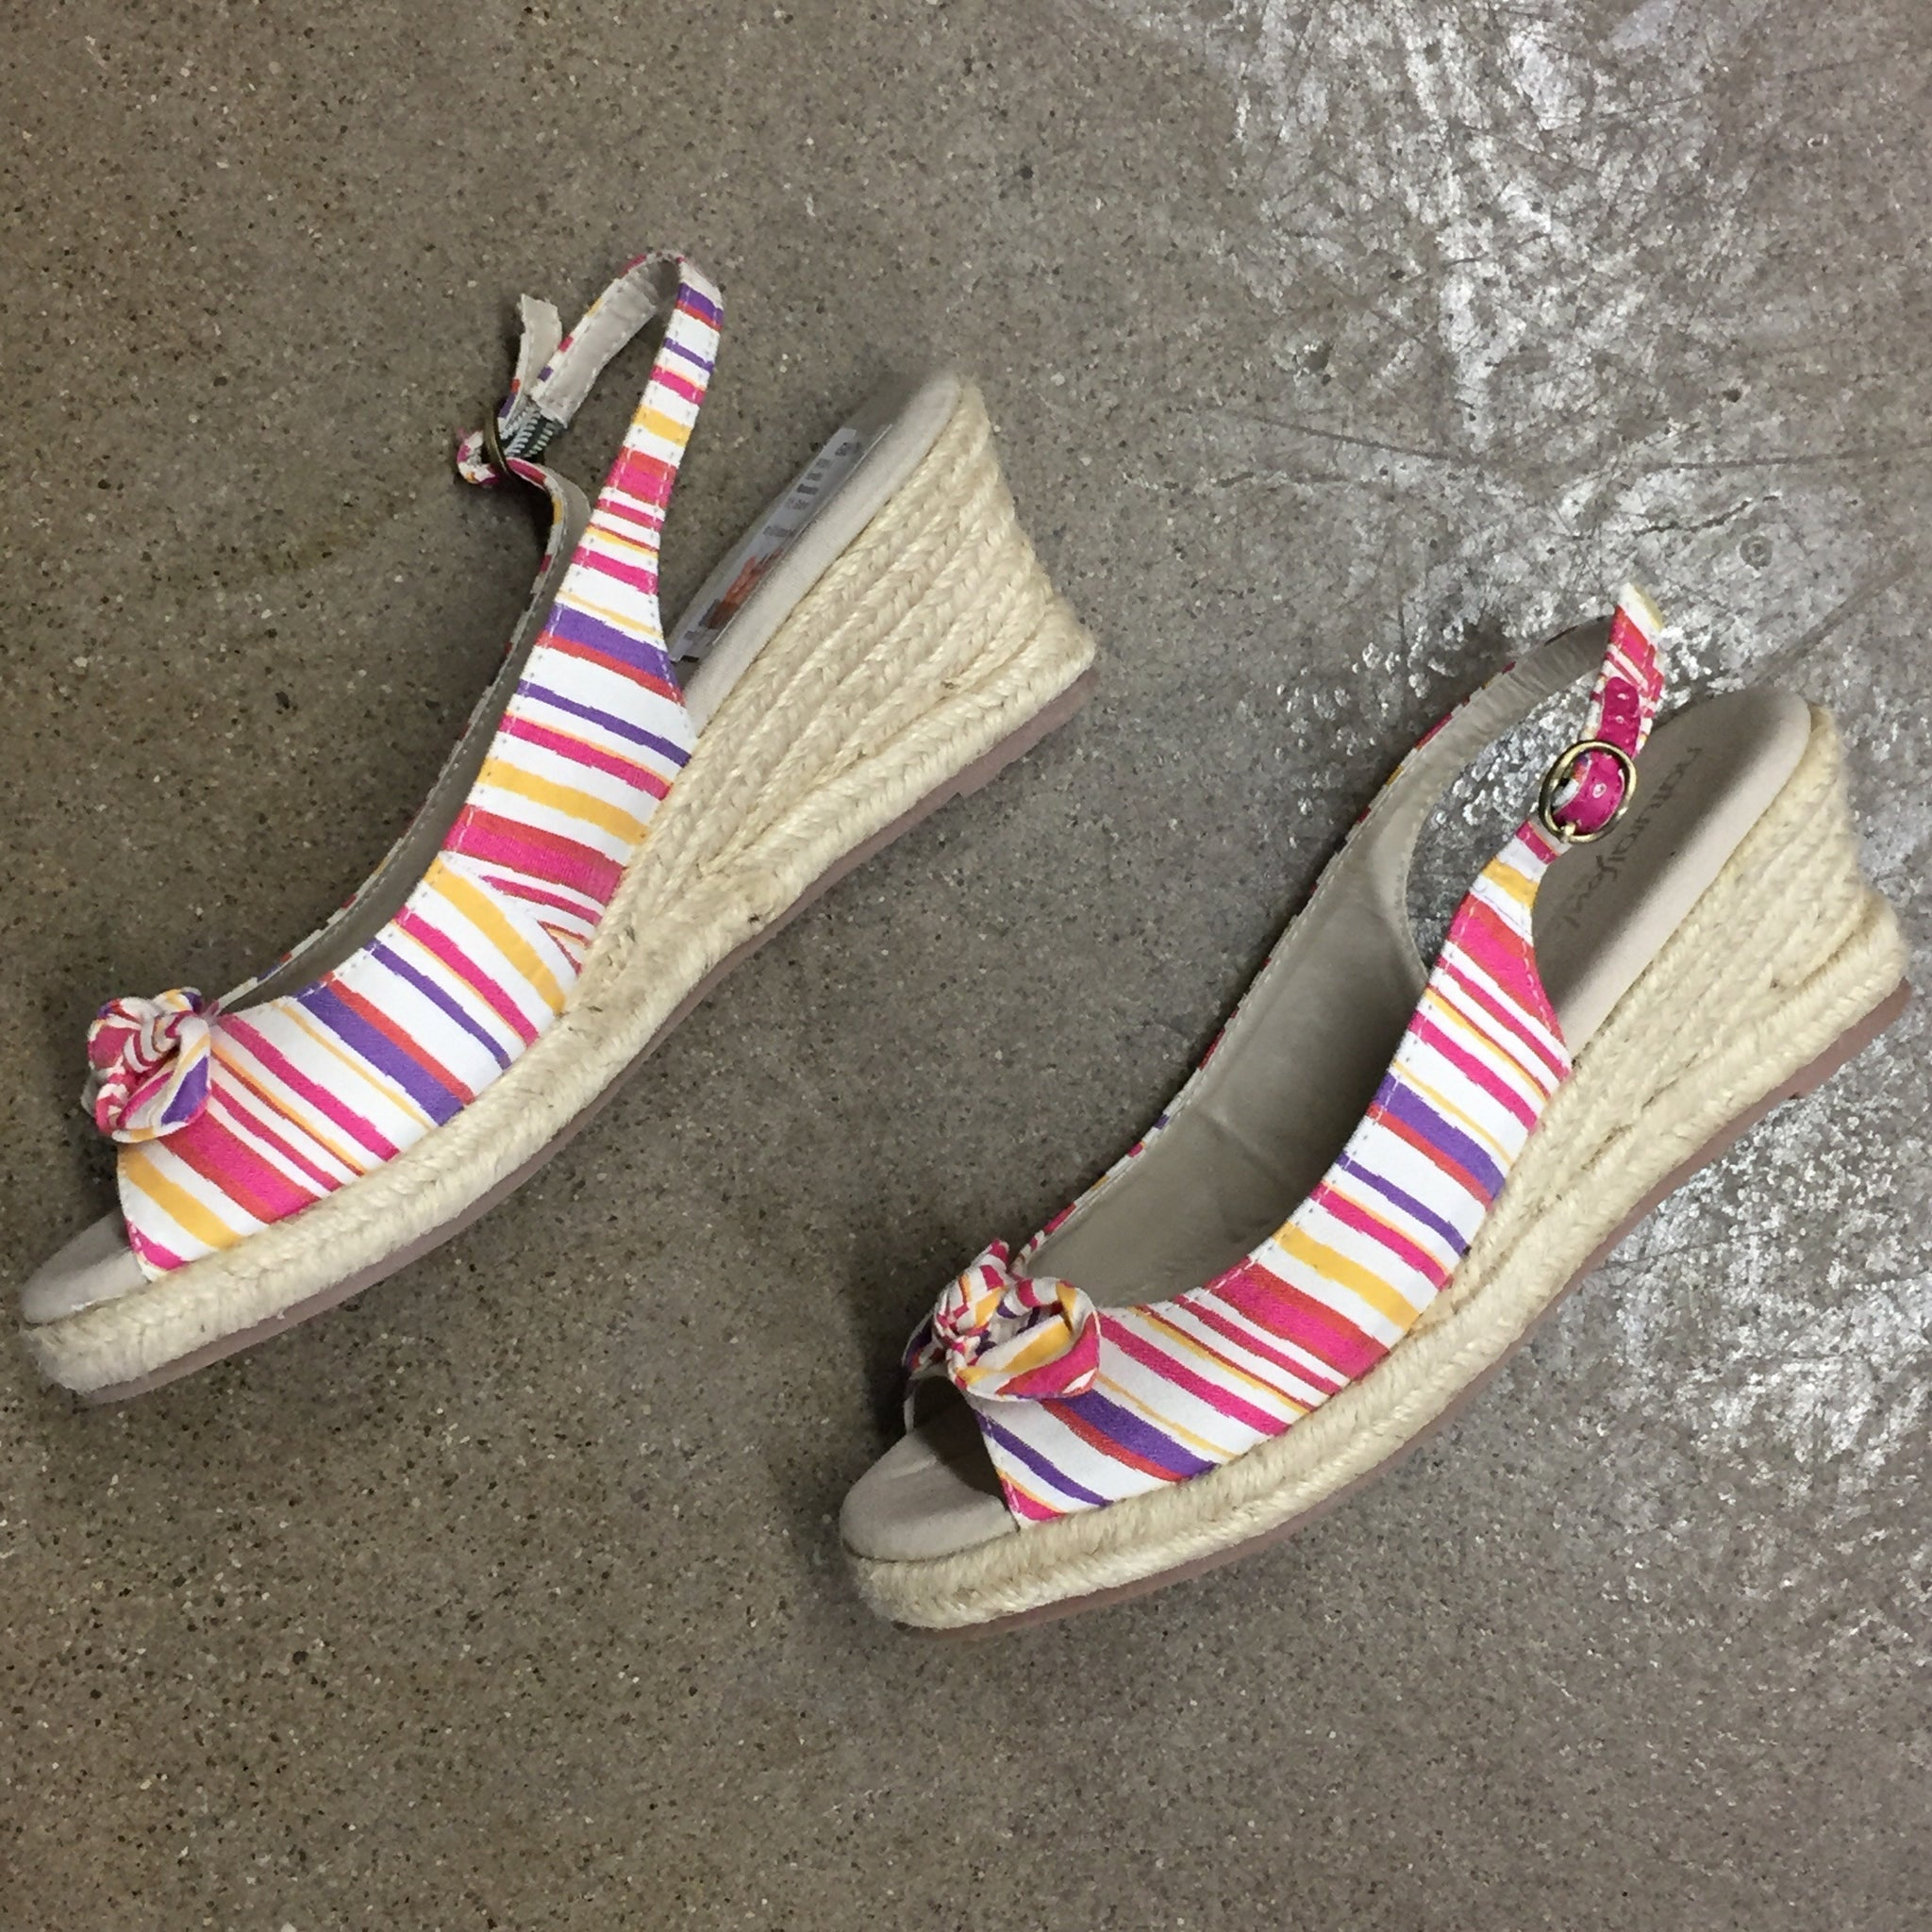 Naturalizer Striped Wedges, Size 9.5